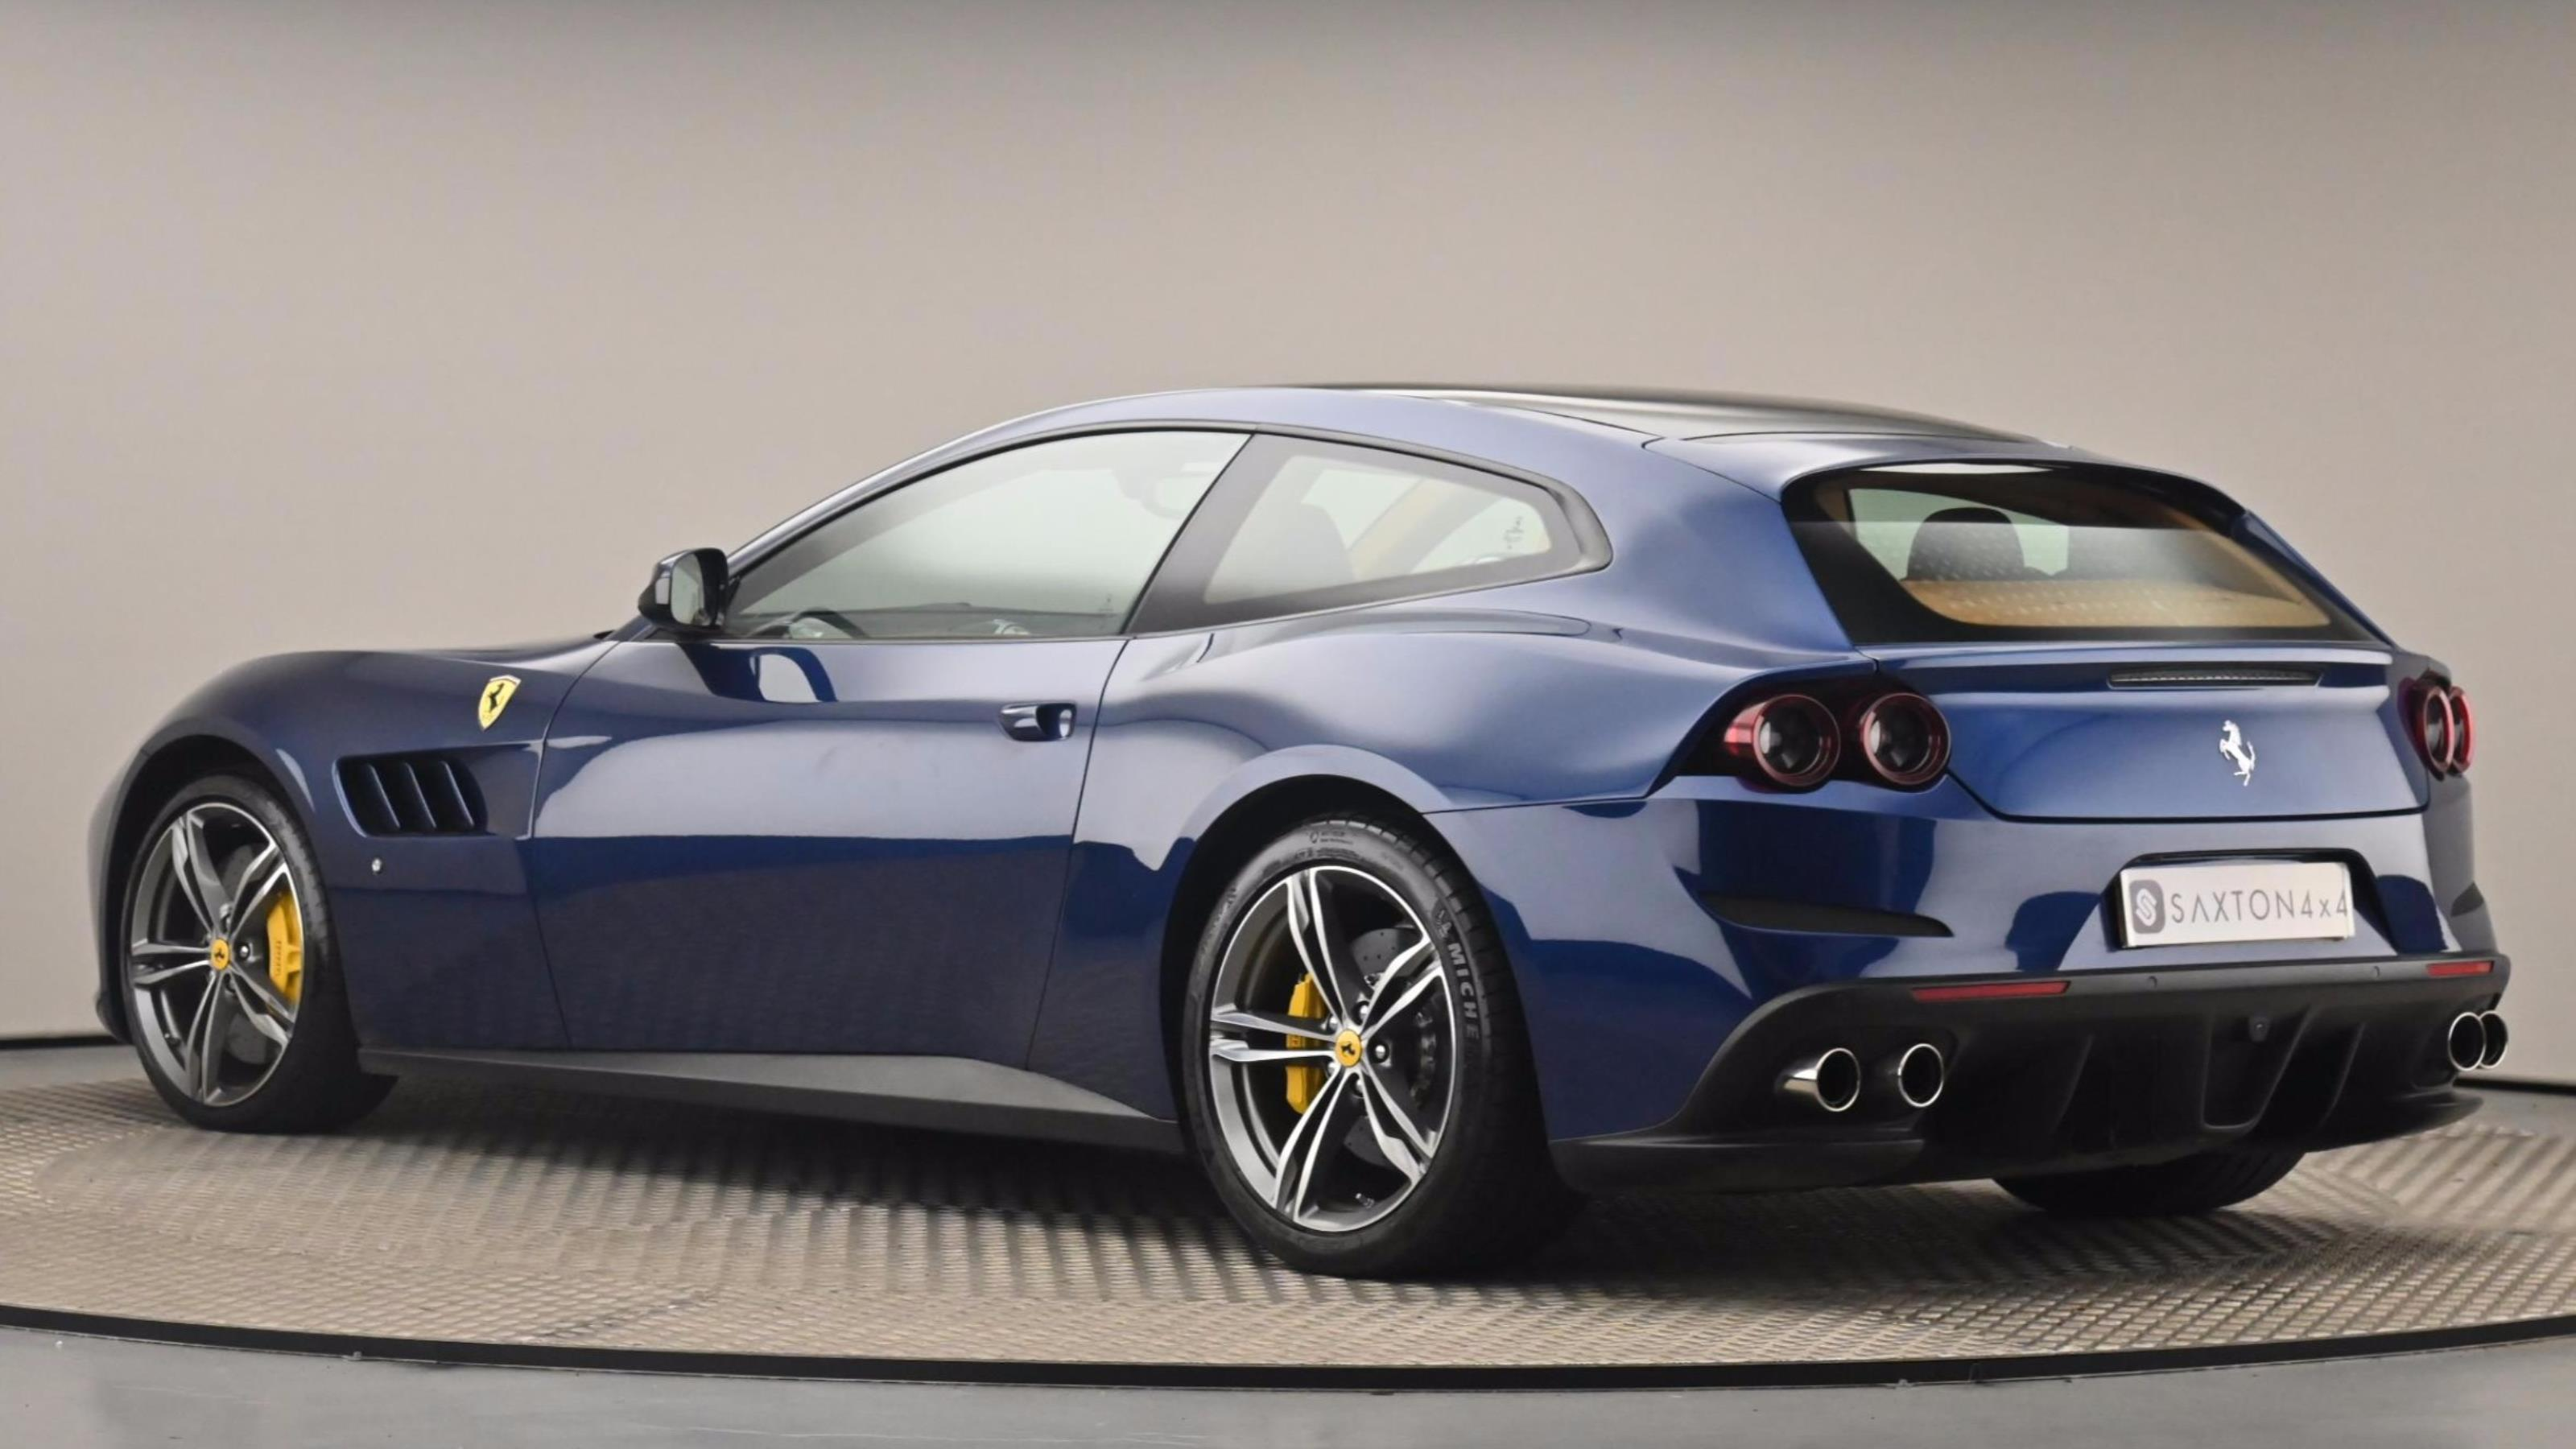 Used 2017 Ferrari GTC4 LUSSO 2dr Auto Blue at Saxton4x4